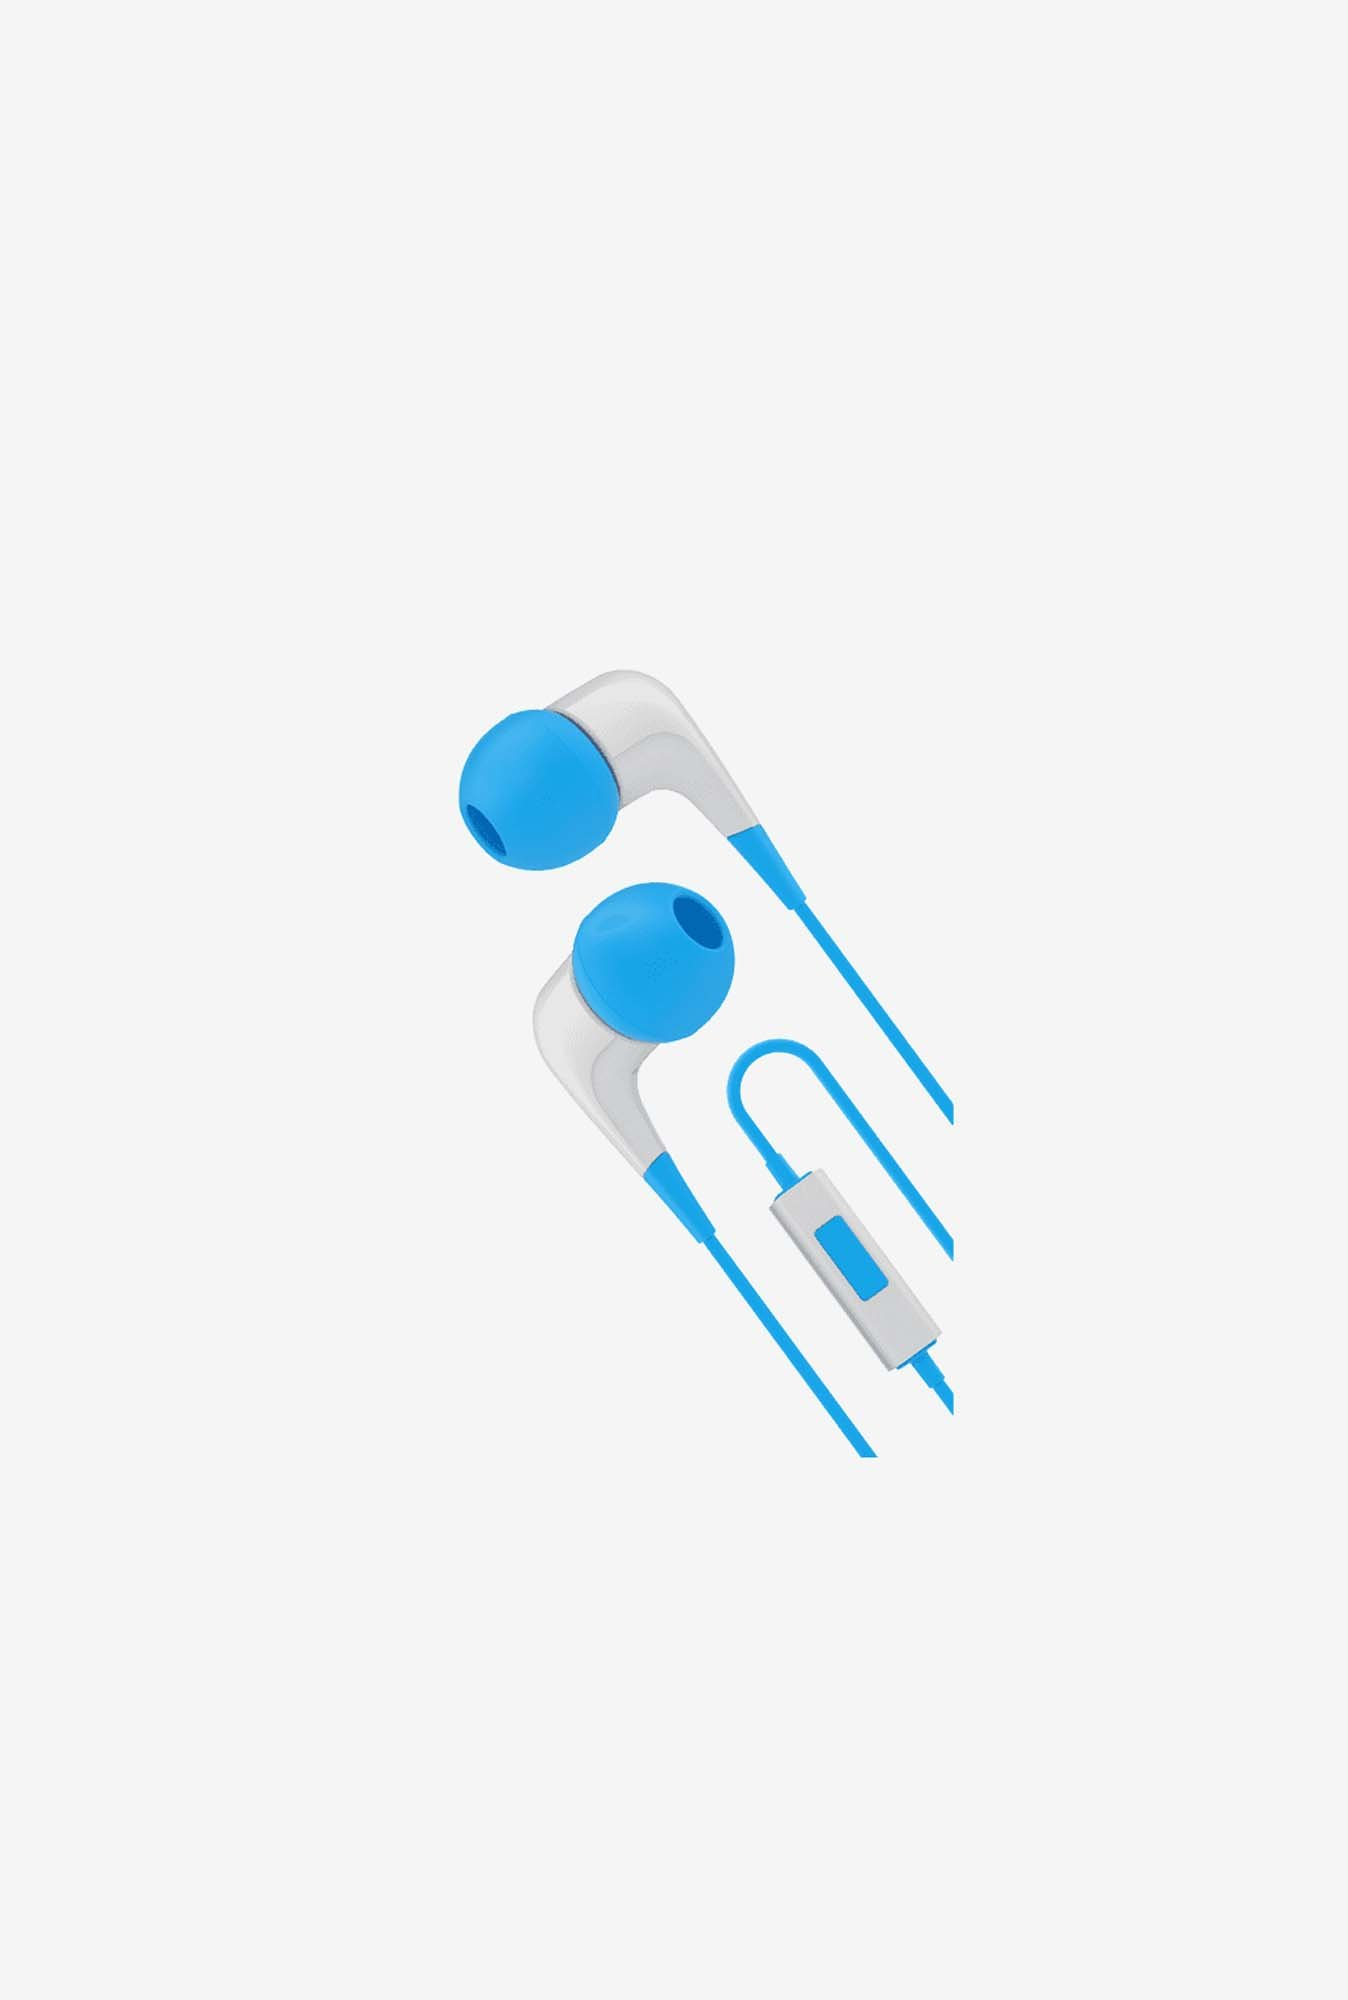 Cygnett CY1720HEWIR In the Ear Headphone White and Blue